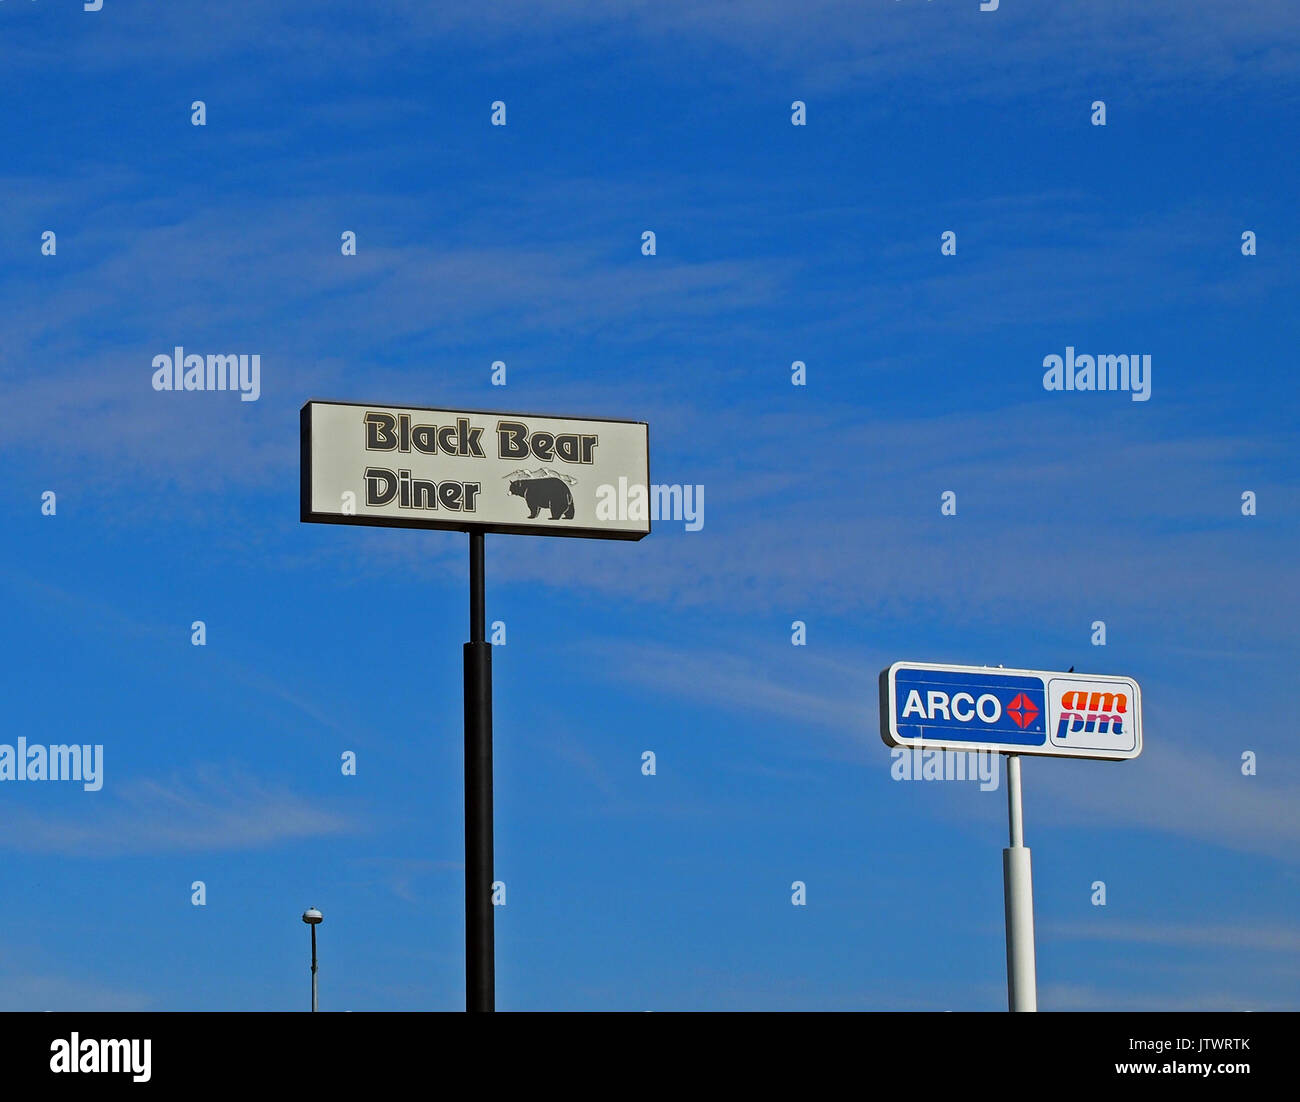 Arco Gas Station Near Me >> Black Bear Diner Restaurant And Arco Gas Station And Am Pm Market